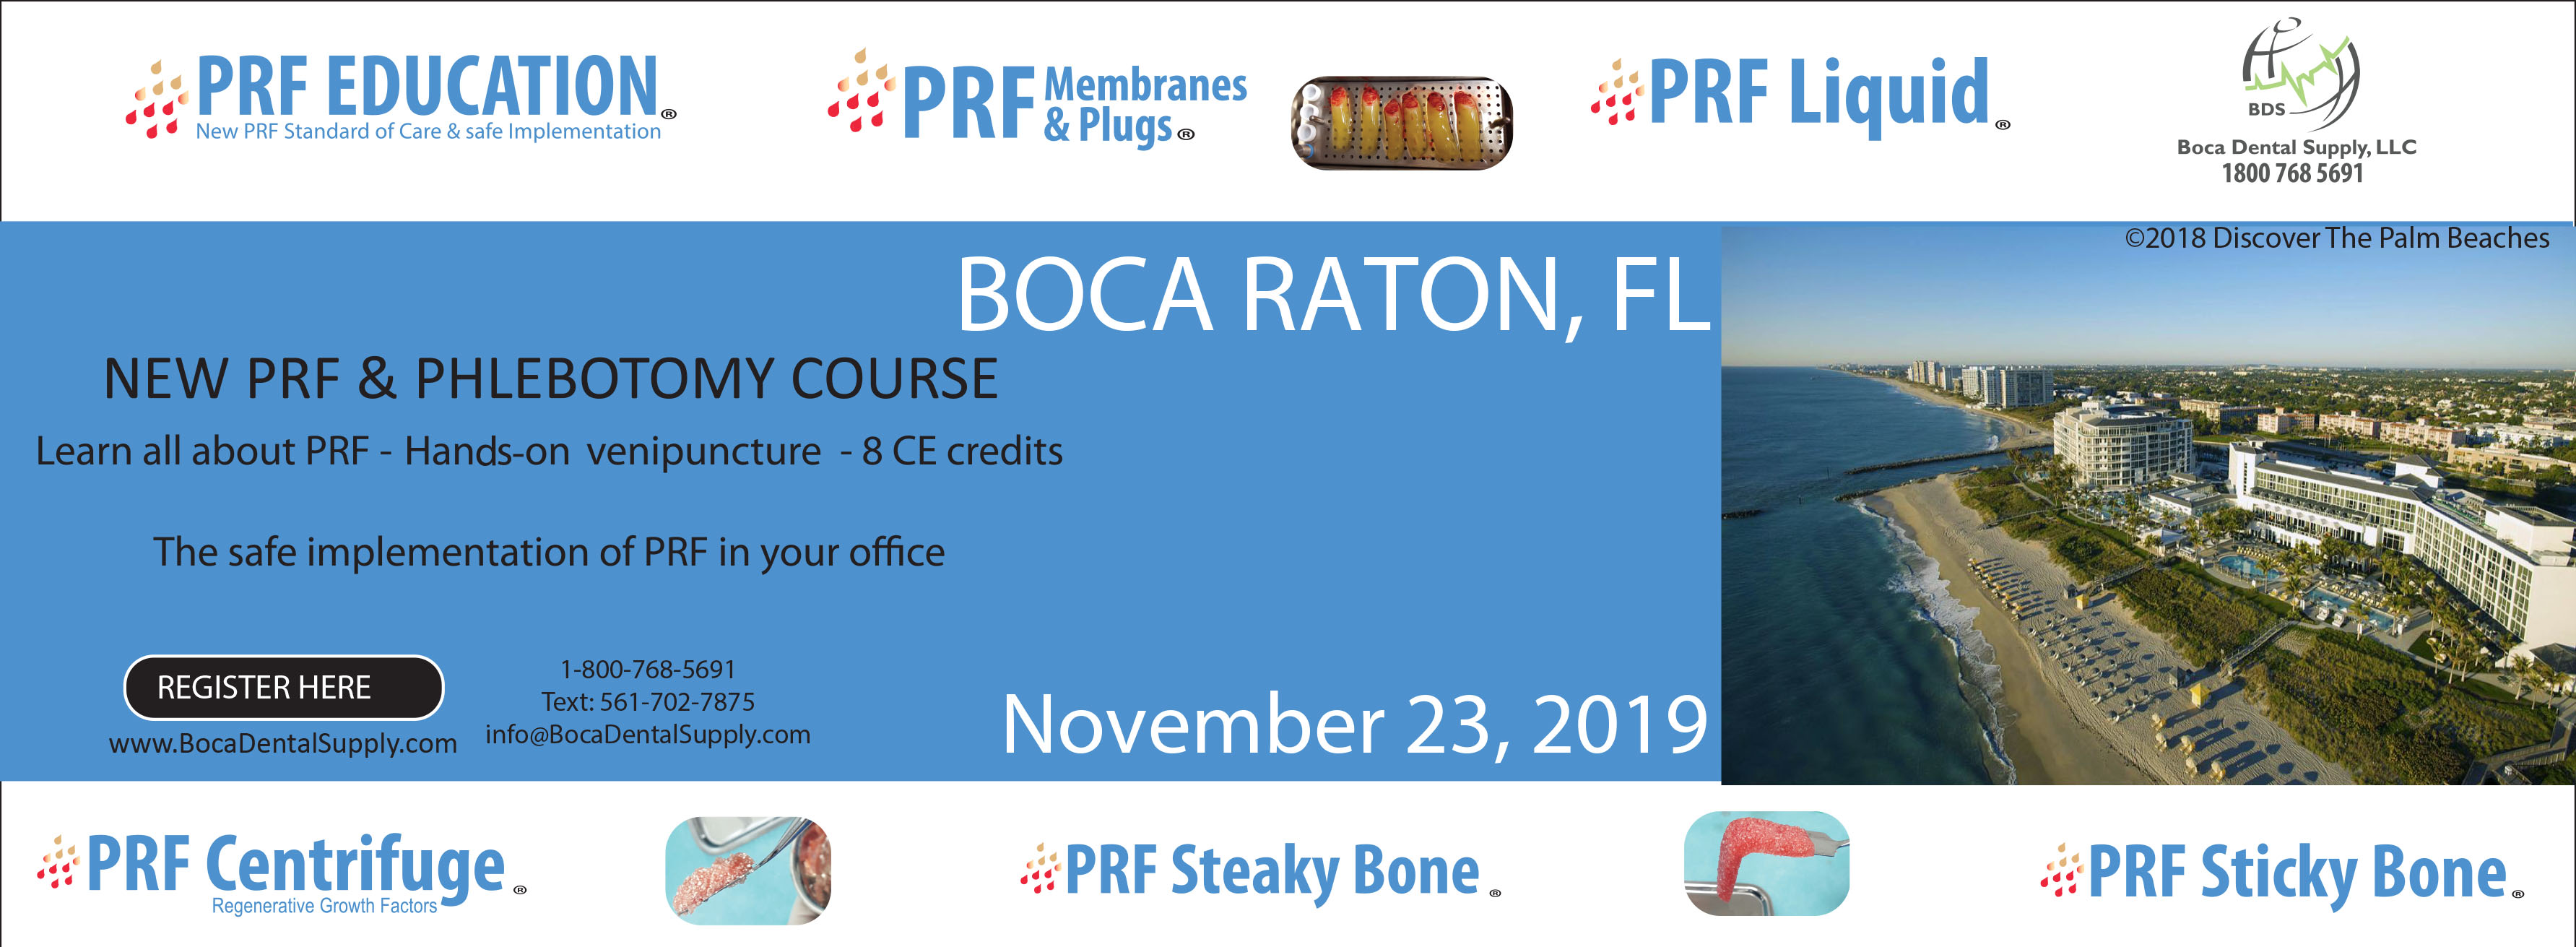 prf-course-boca-nov.-2019.jpg